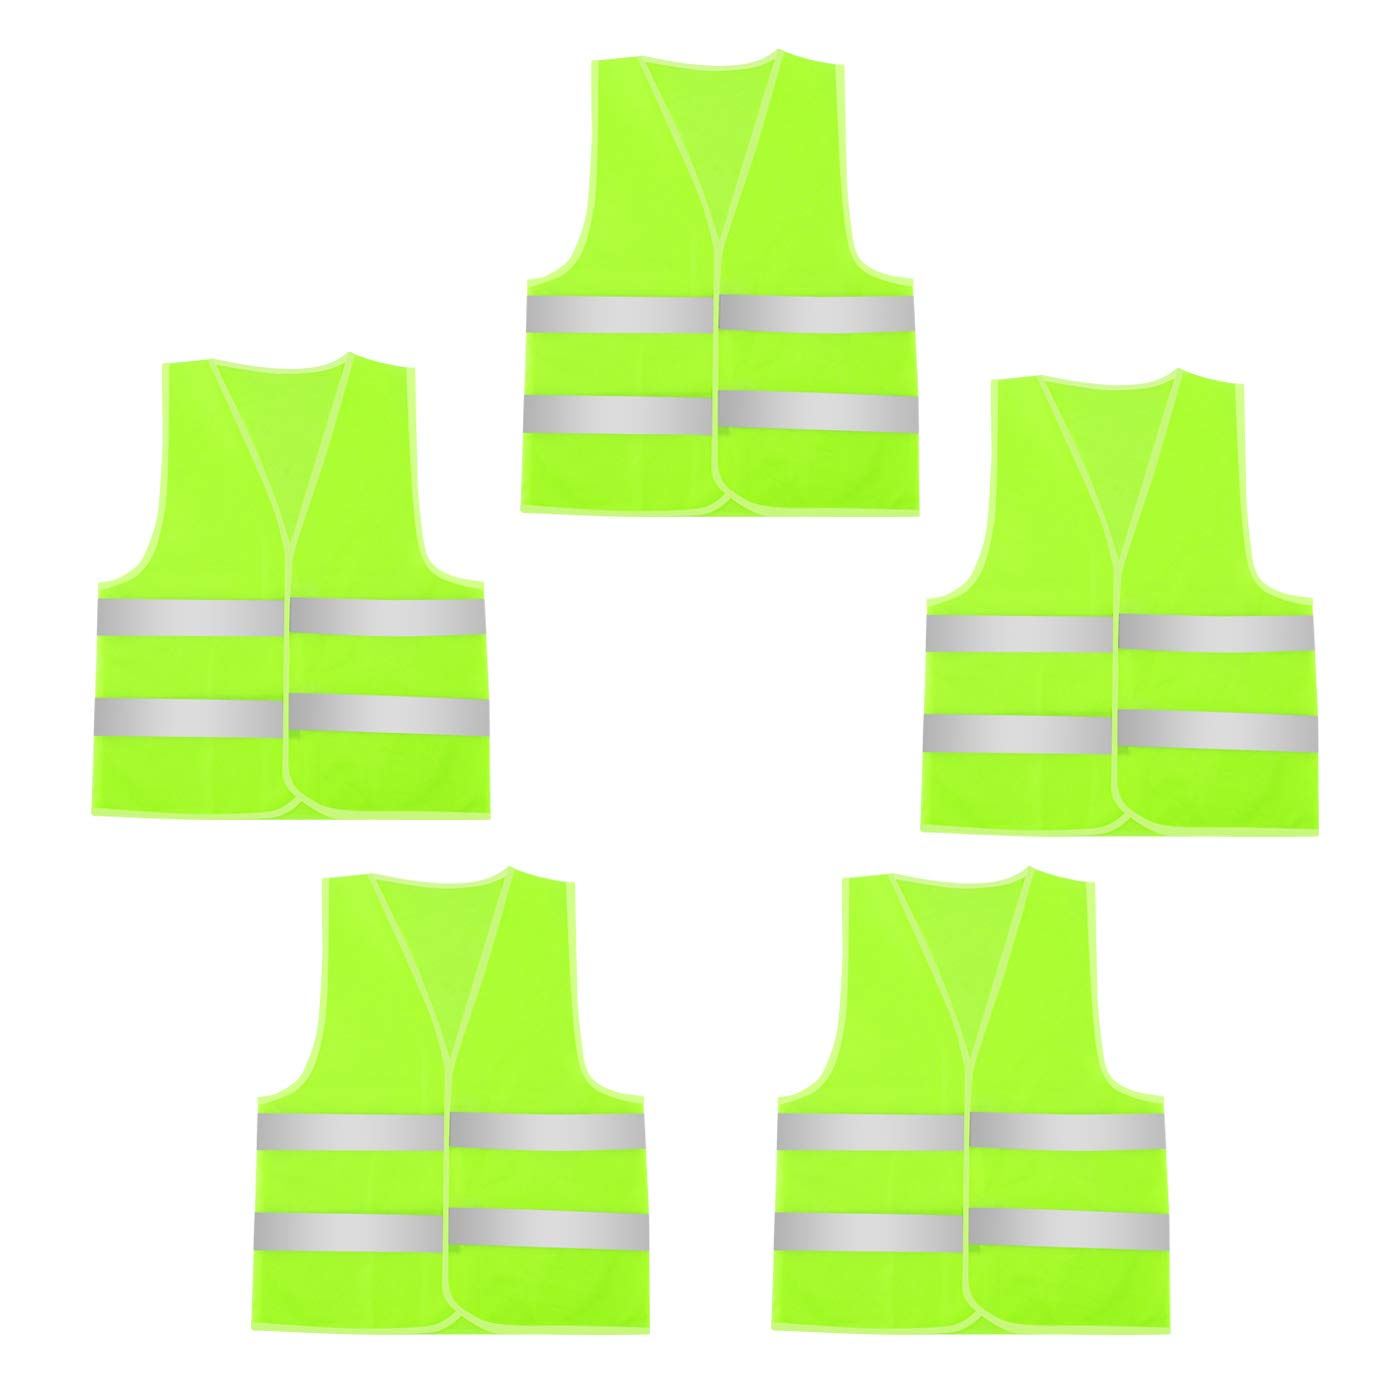 AIEOE 5 Pack/ 10 Pack Reflective Safety Vest High Visibility for Construction Work